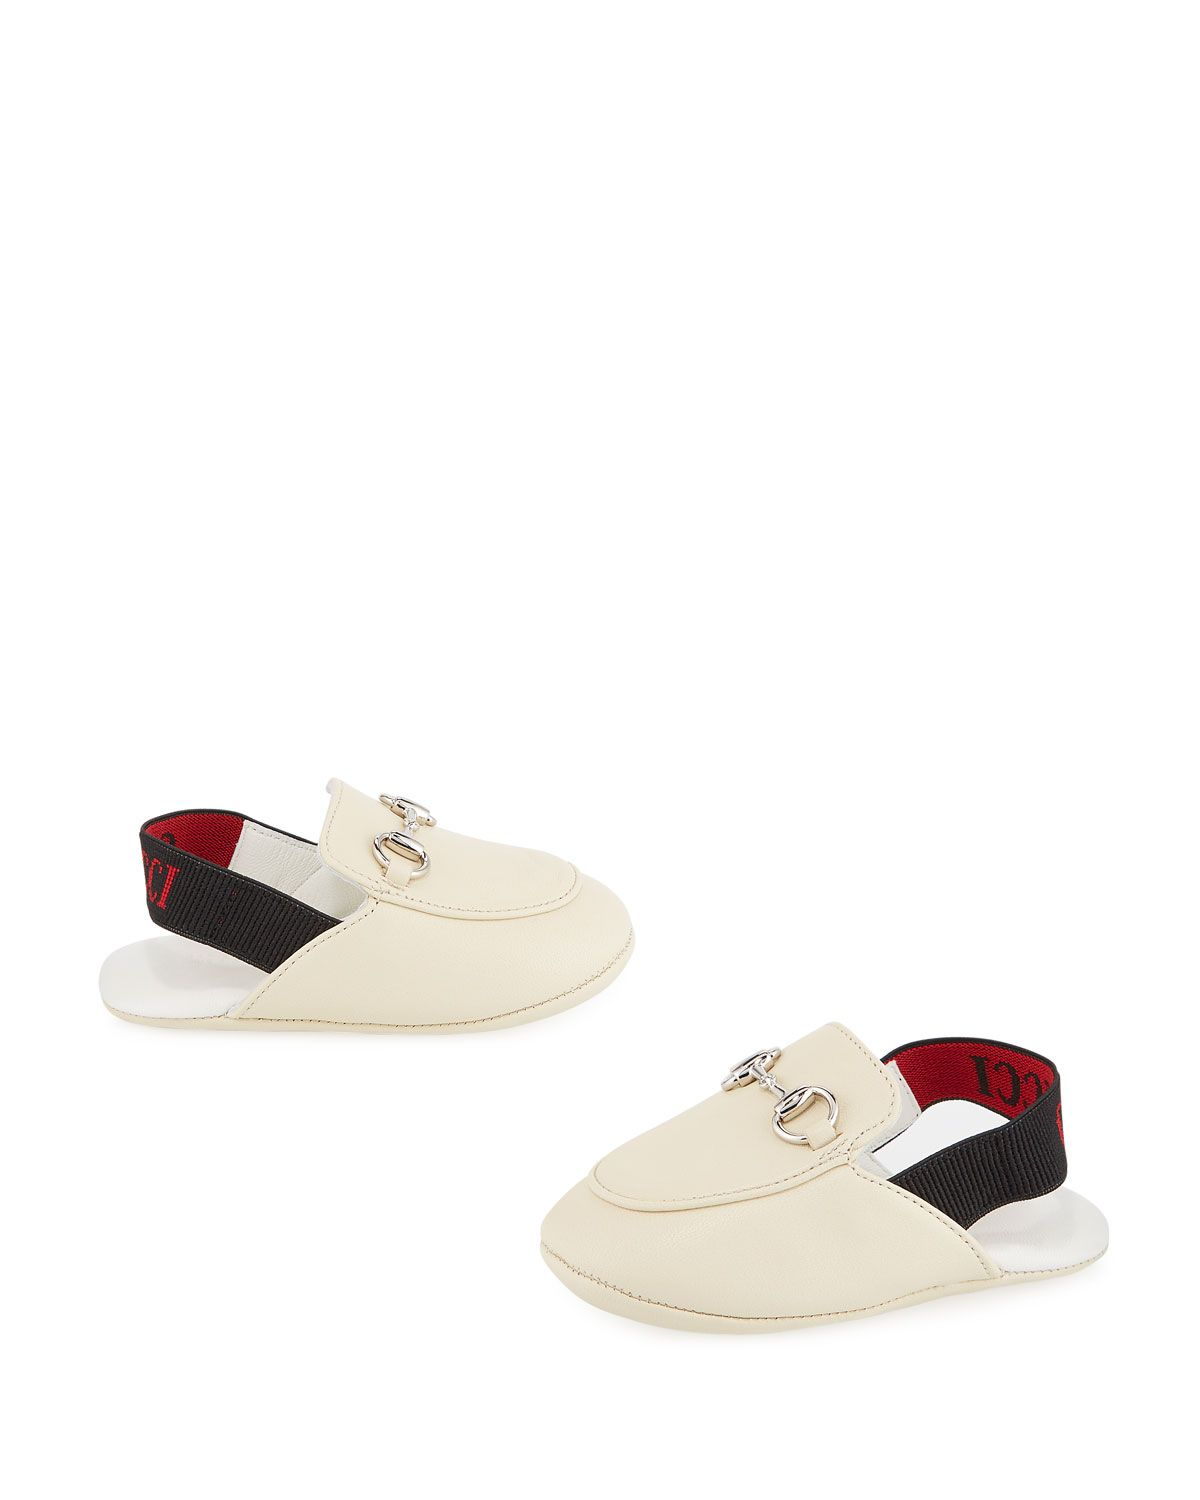 e10b1438 GUCCI PRINCETOWN LEATHER HORSEBIT MULE SLIDES, BABY/TODDLER. #gucci ...